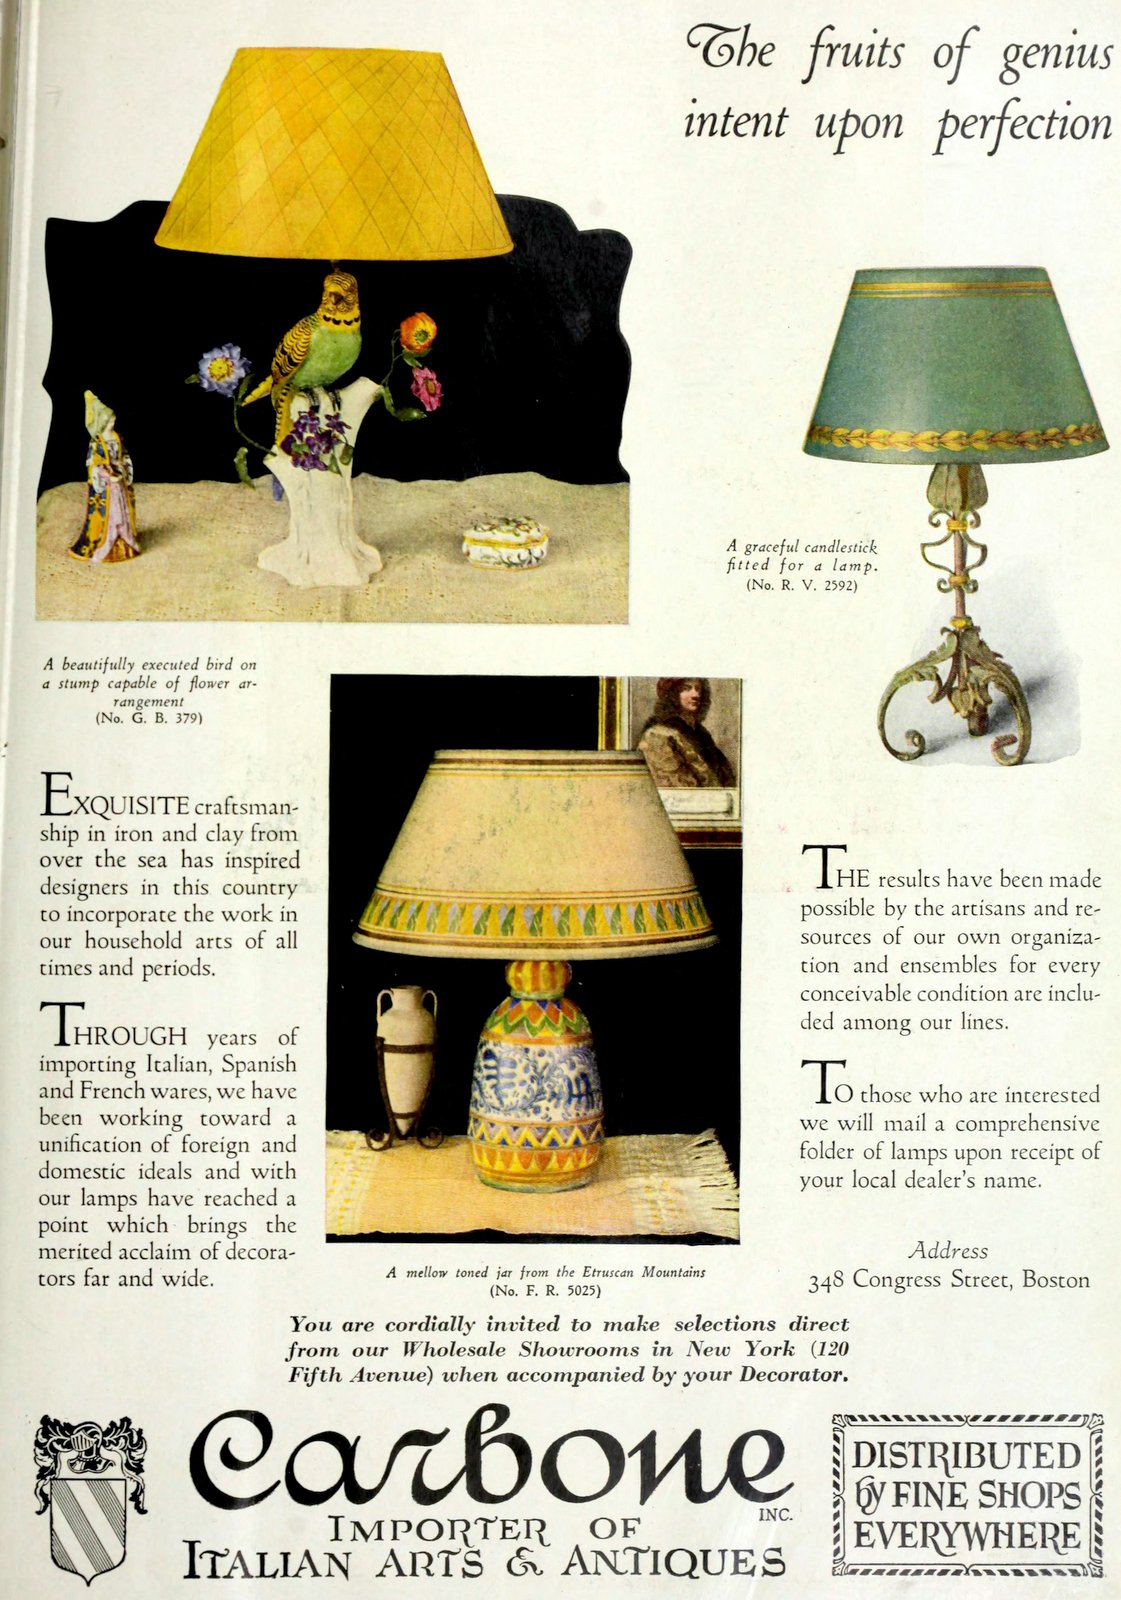 Antique Carbone lamps and shades (1927)